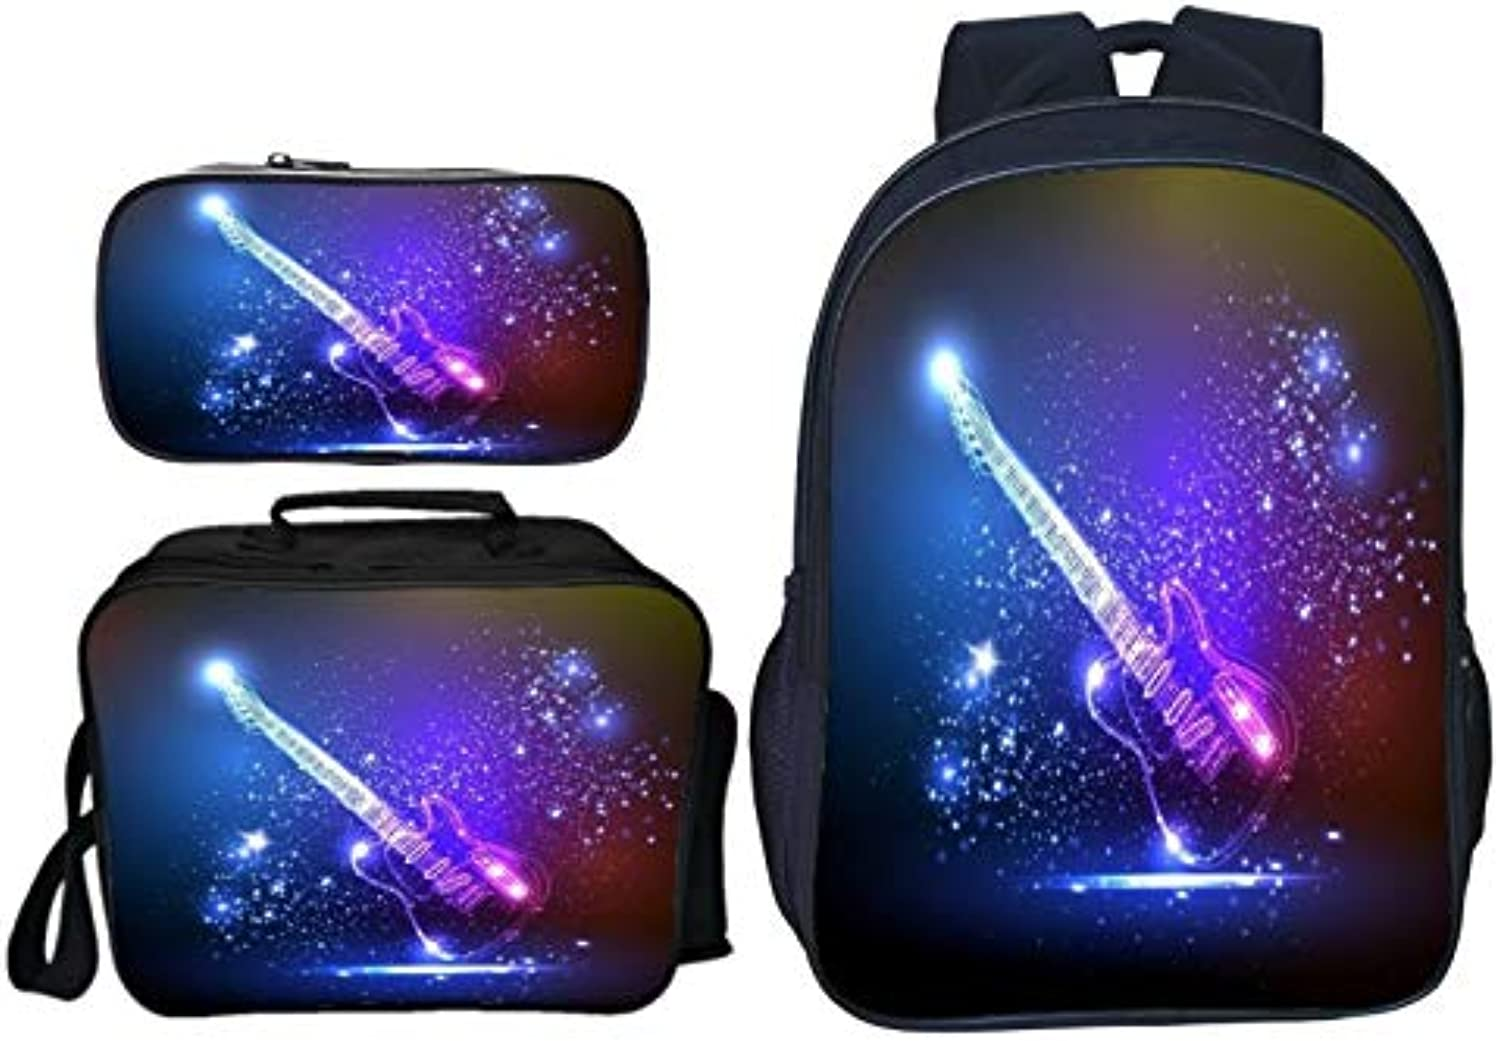 Guitar Anime 3D Printed School Bag Set Cute Kids Backpack and Insulted Lunch Box Pen Case Multifunction 3 in 1